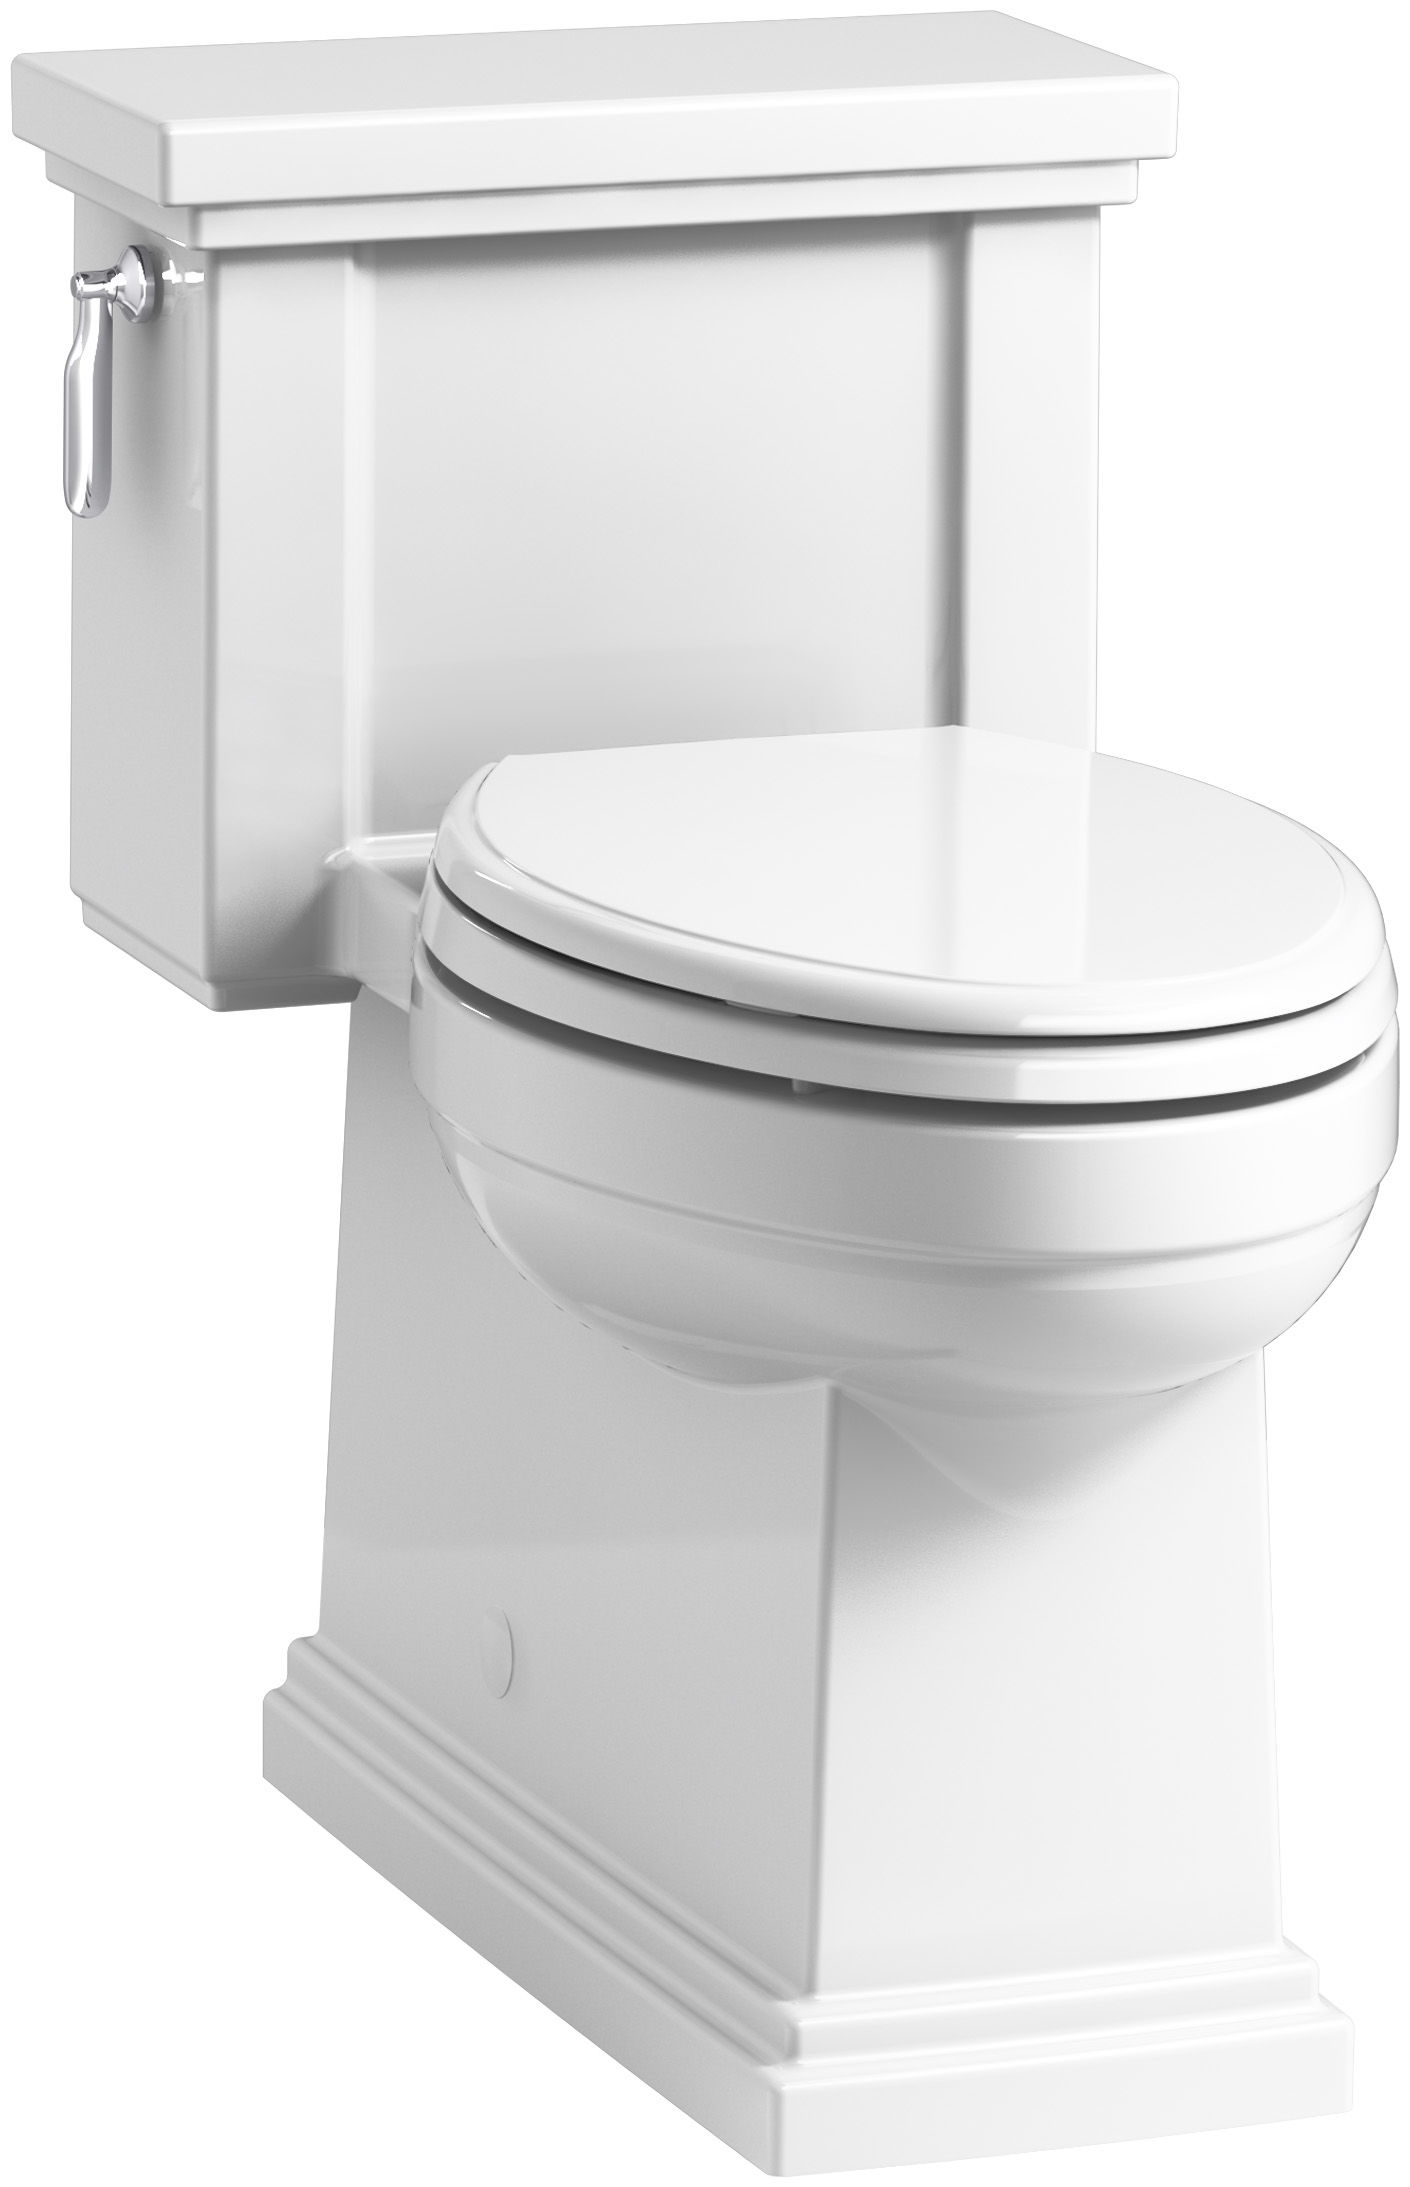 10 inch rough in toilet - Kohler K 3981